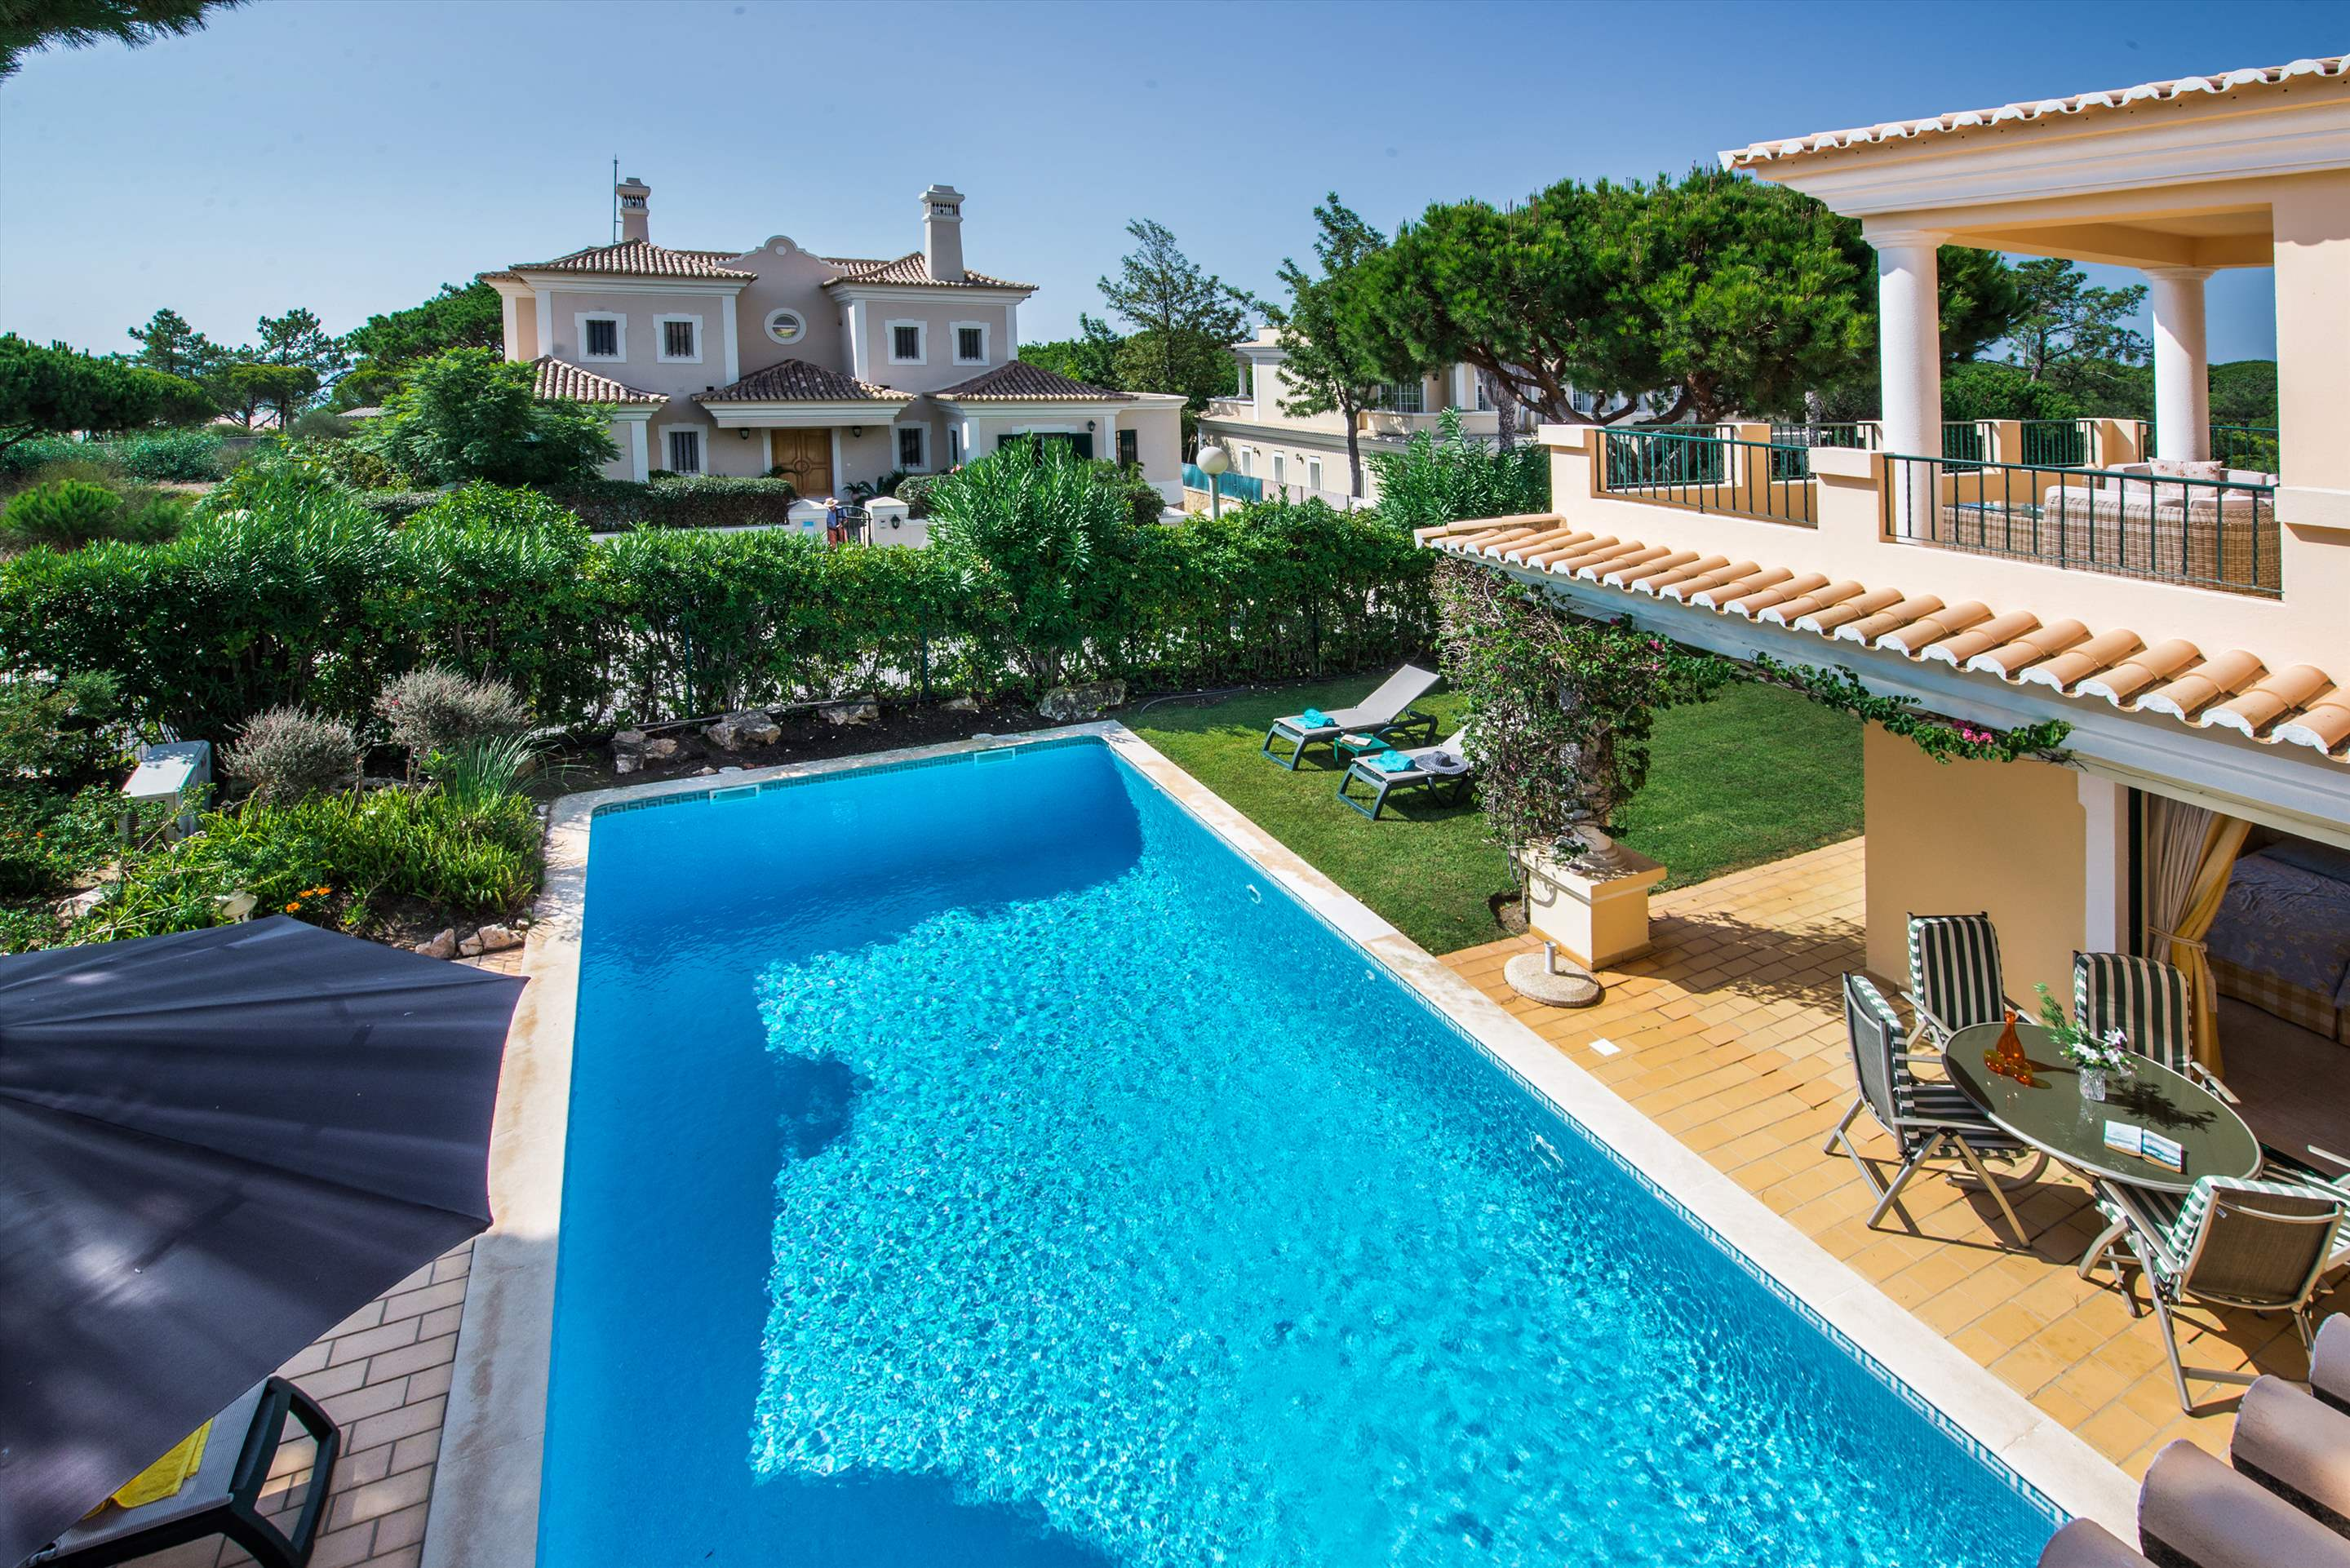 Casa da Encosta, 4 bedroom villa in Vale do Lobo, Algarve Photo #13